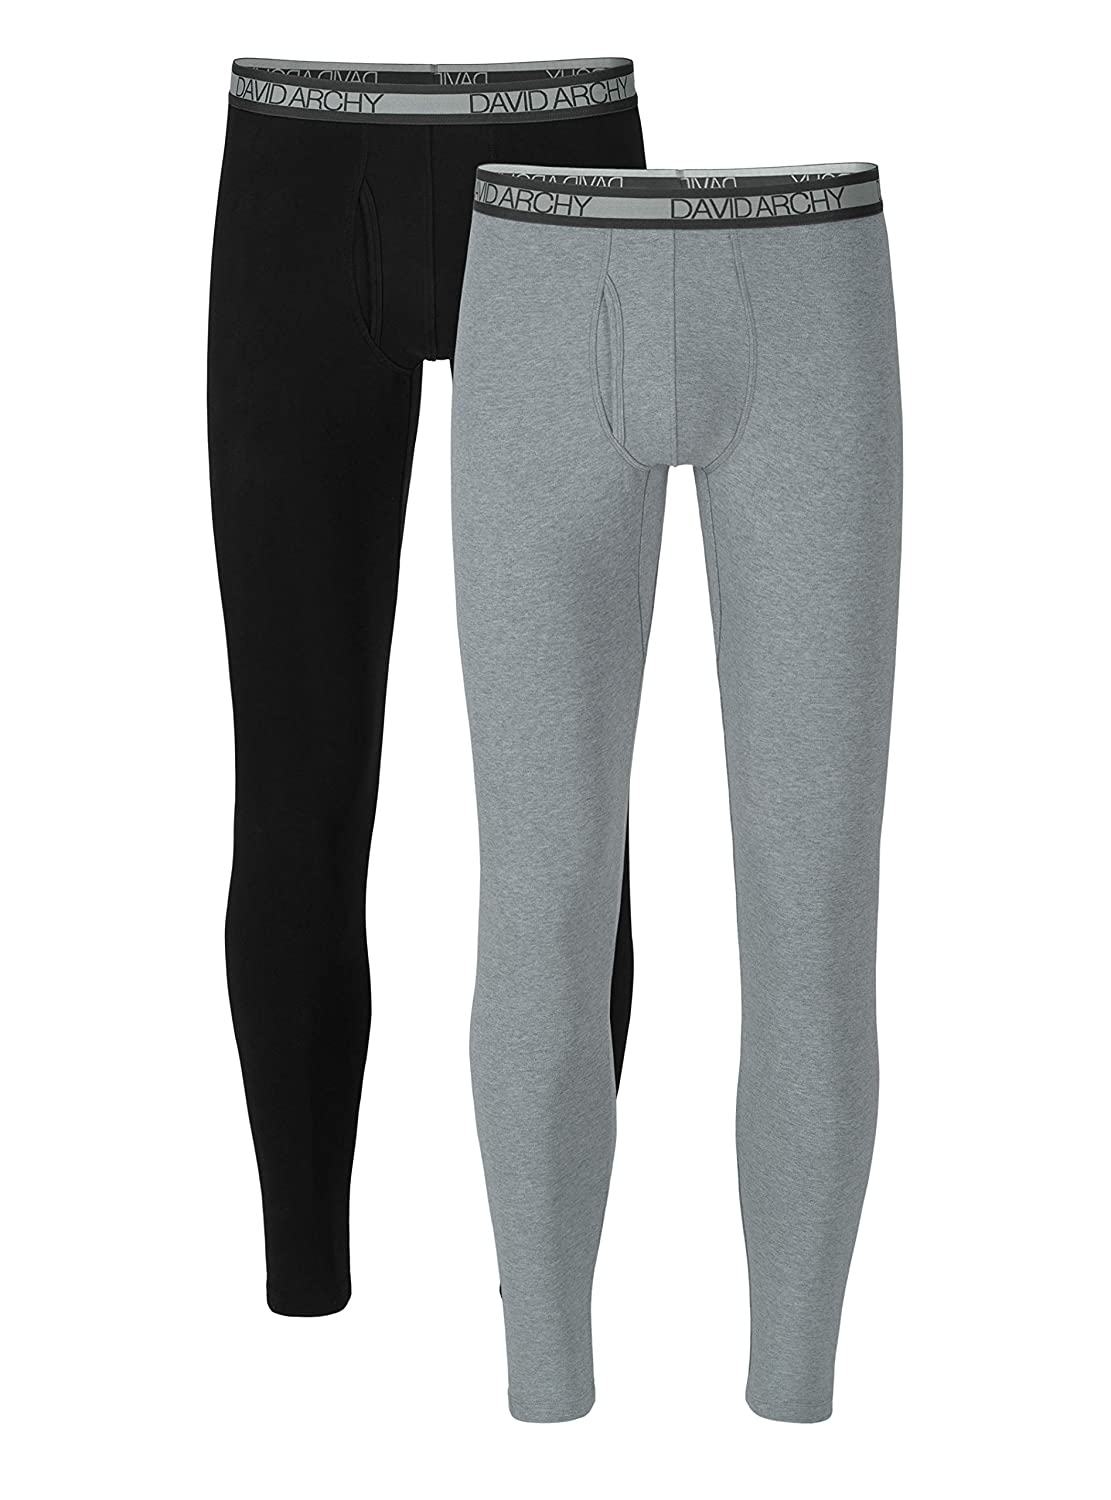 David Archy Men's 2 Pack Winter Warm Stretchy Cotton Fleece Lined Base Layer Pants Thermal Bottoms Long Johns with Fly